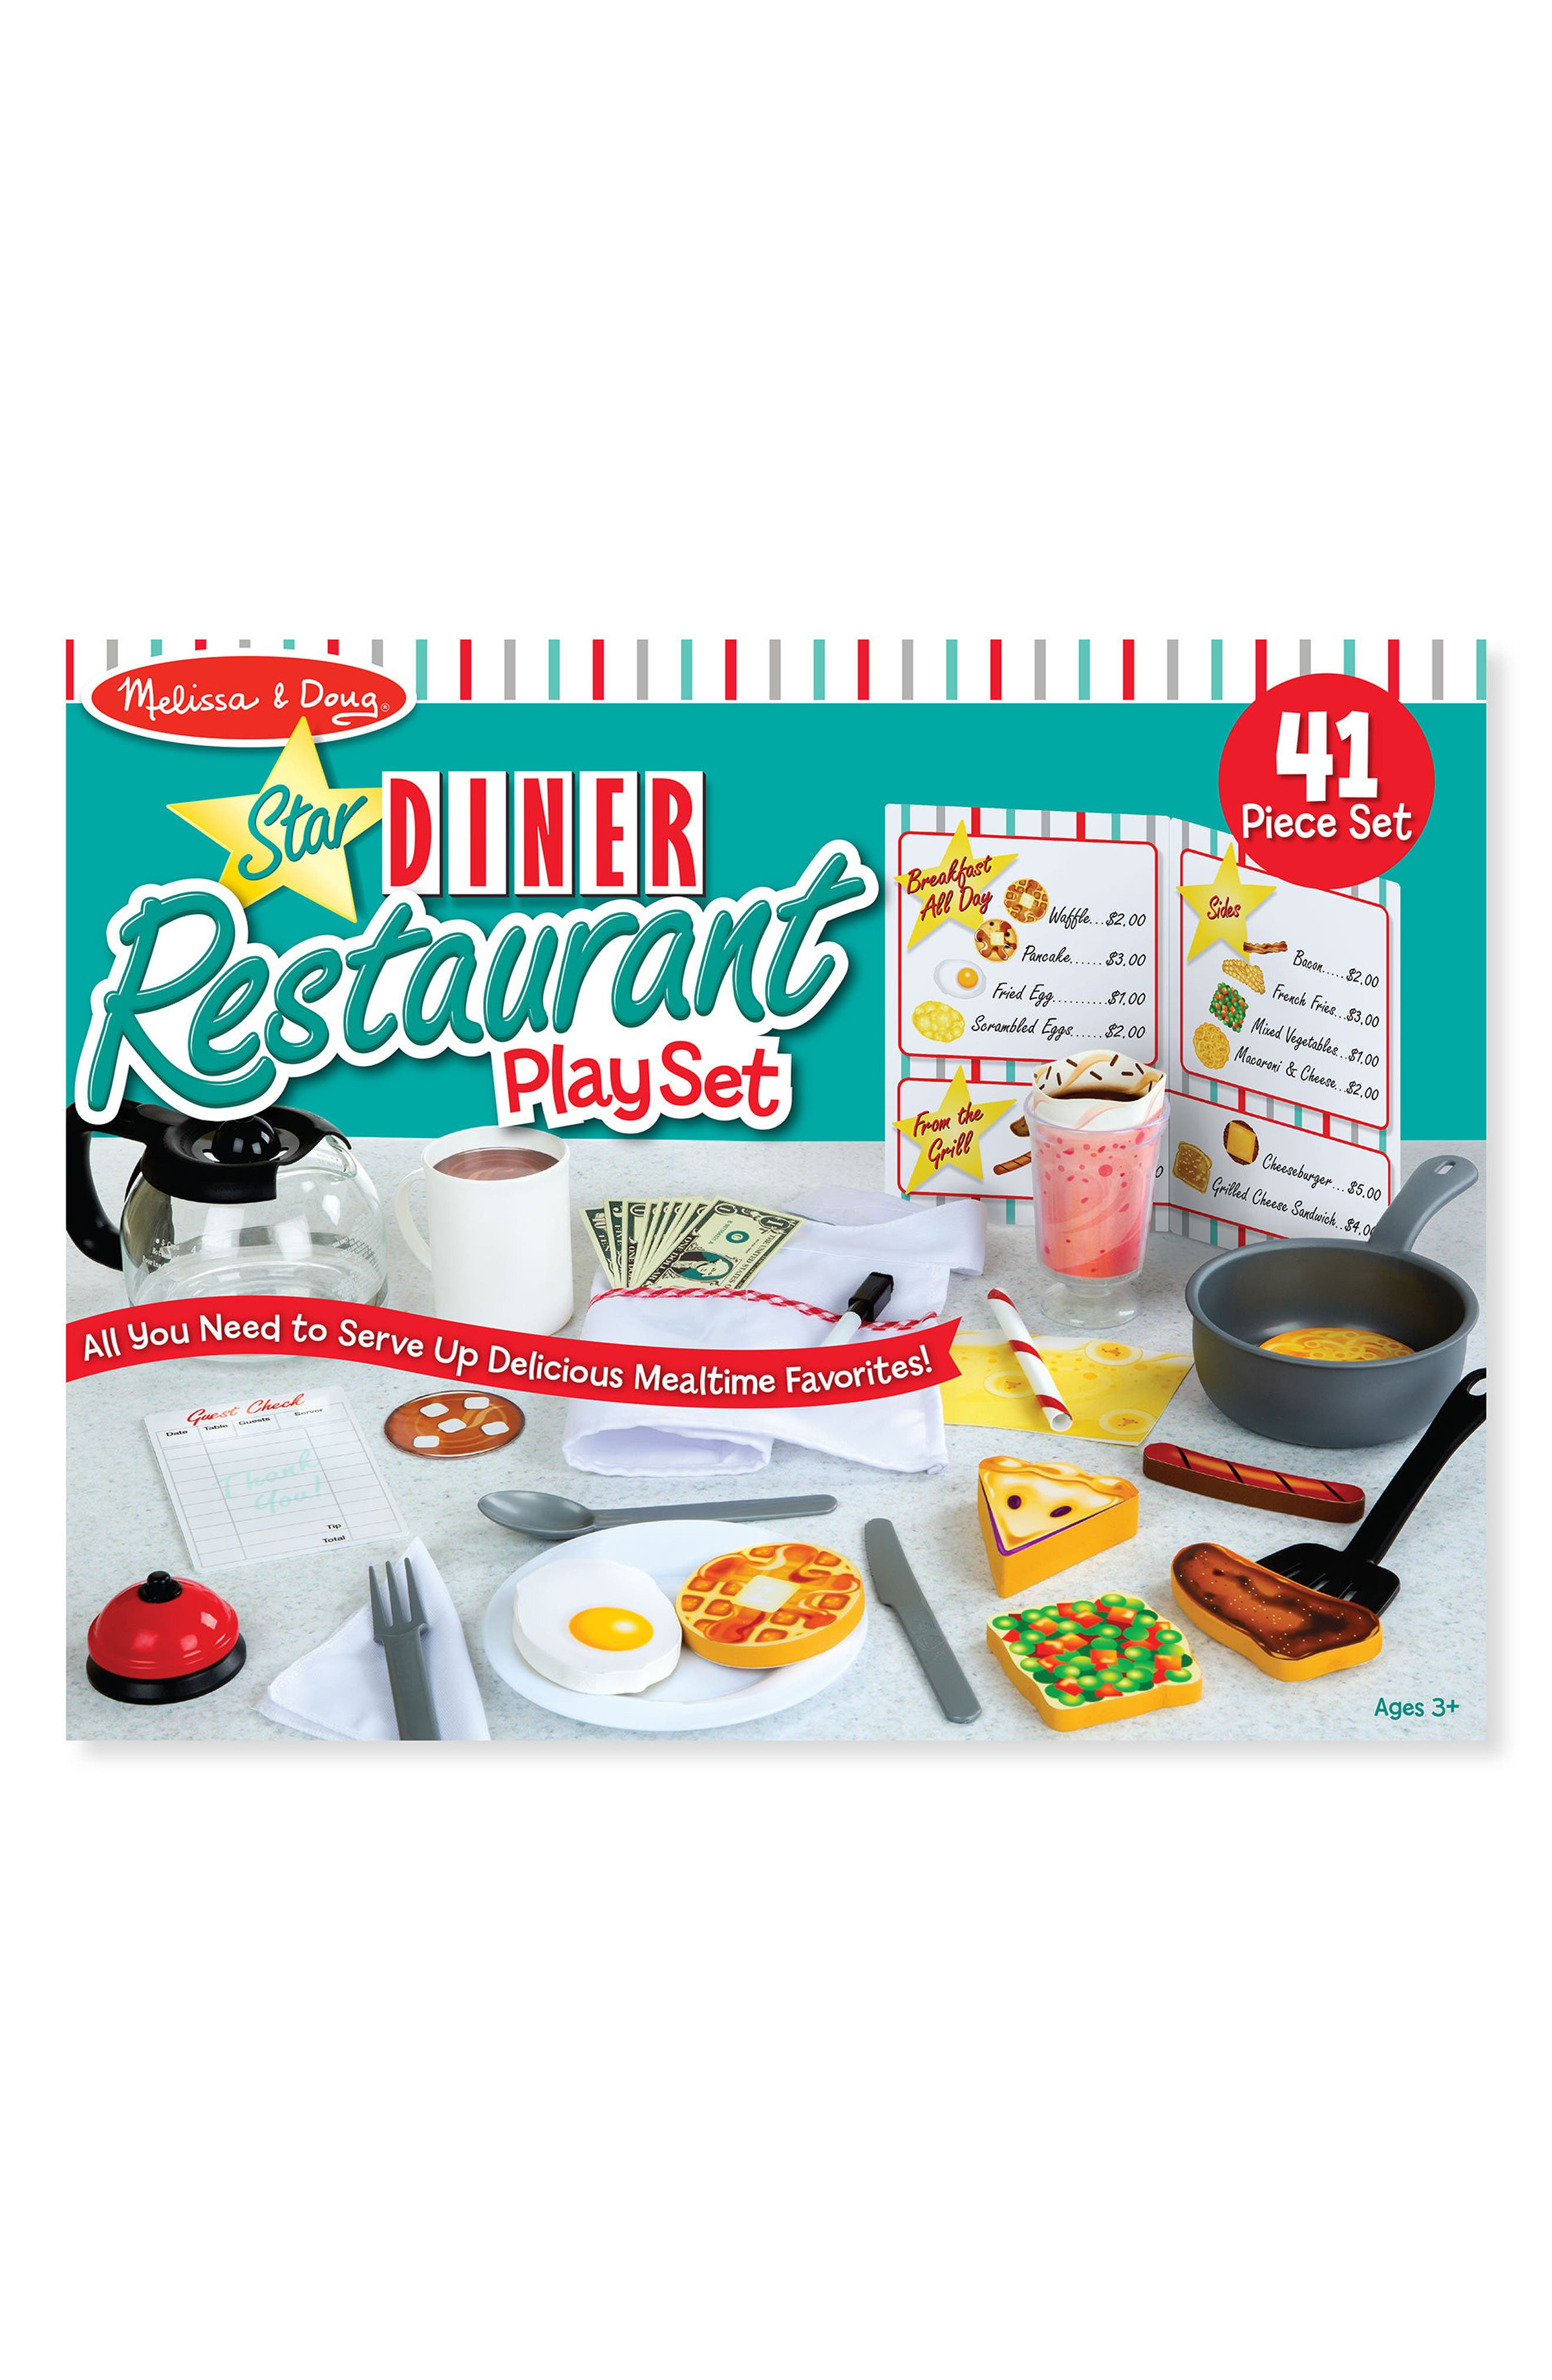 Melissa & Doug 41-Piece Star Diner Restaurant Play Set